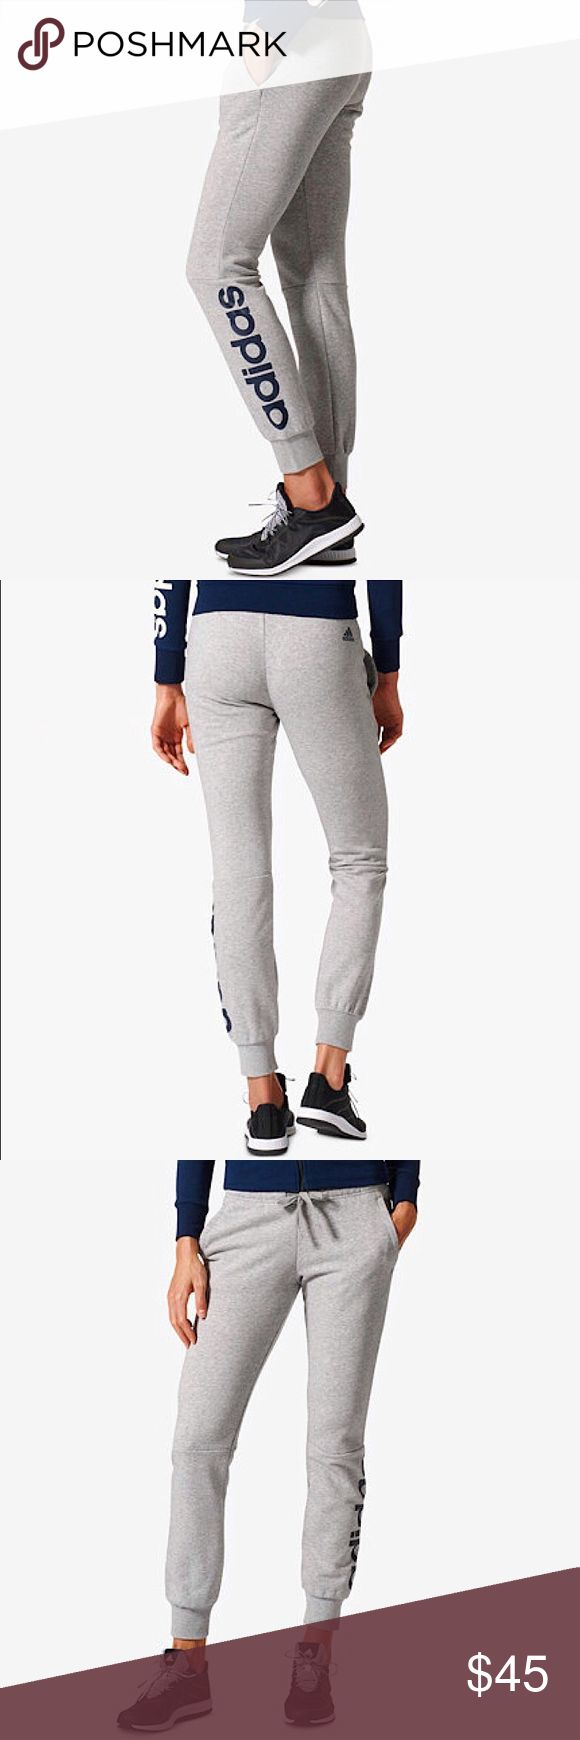 Addidas Linear Cuffed Pants NWT. These women's everyday sweat pants in heather gray are made in soft, breathable French terry and feature a slim fit. They come with a bold linear logo down the leg for a bright pop of color. Adidas Pants Track Pants & Joggers